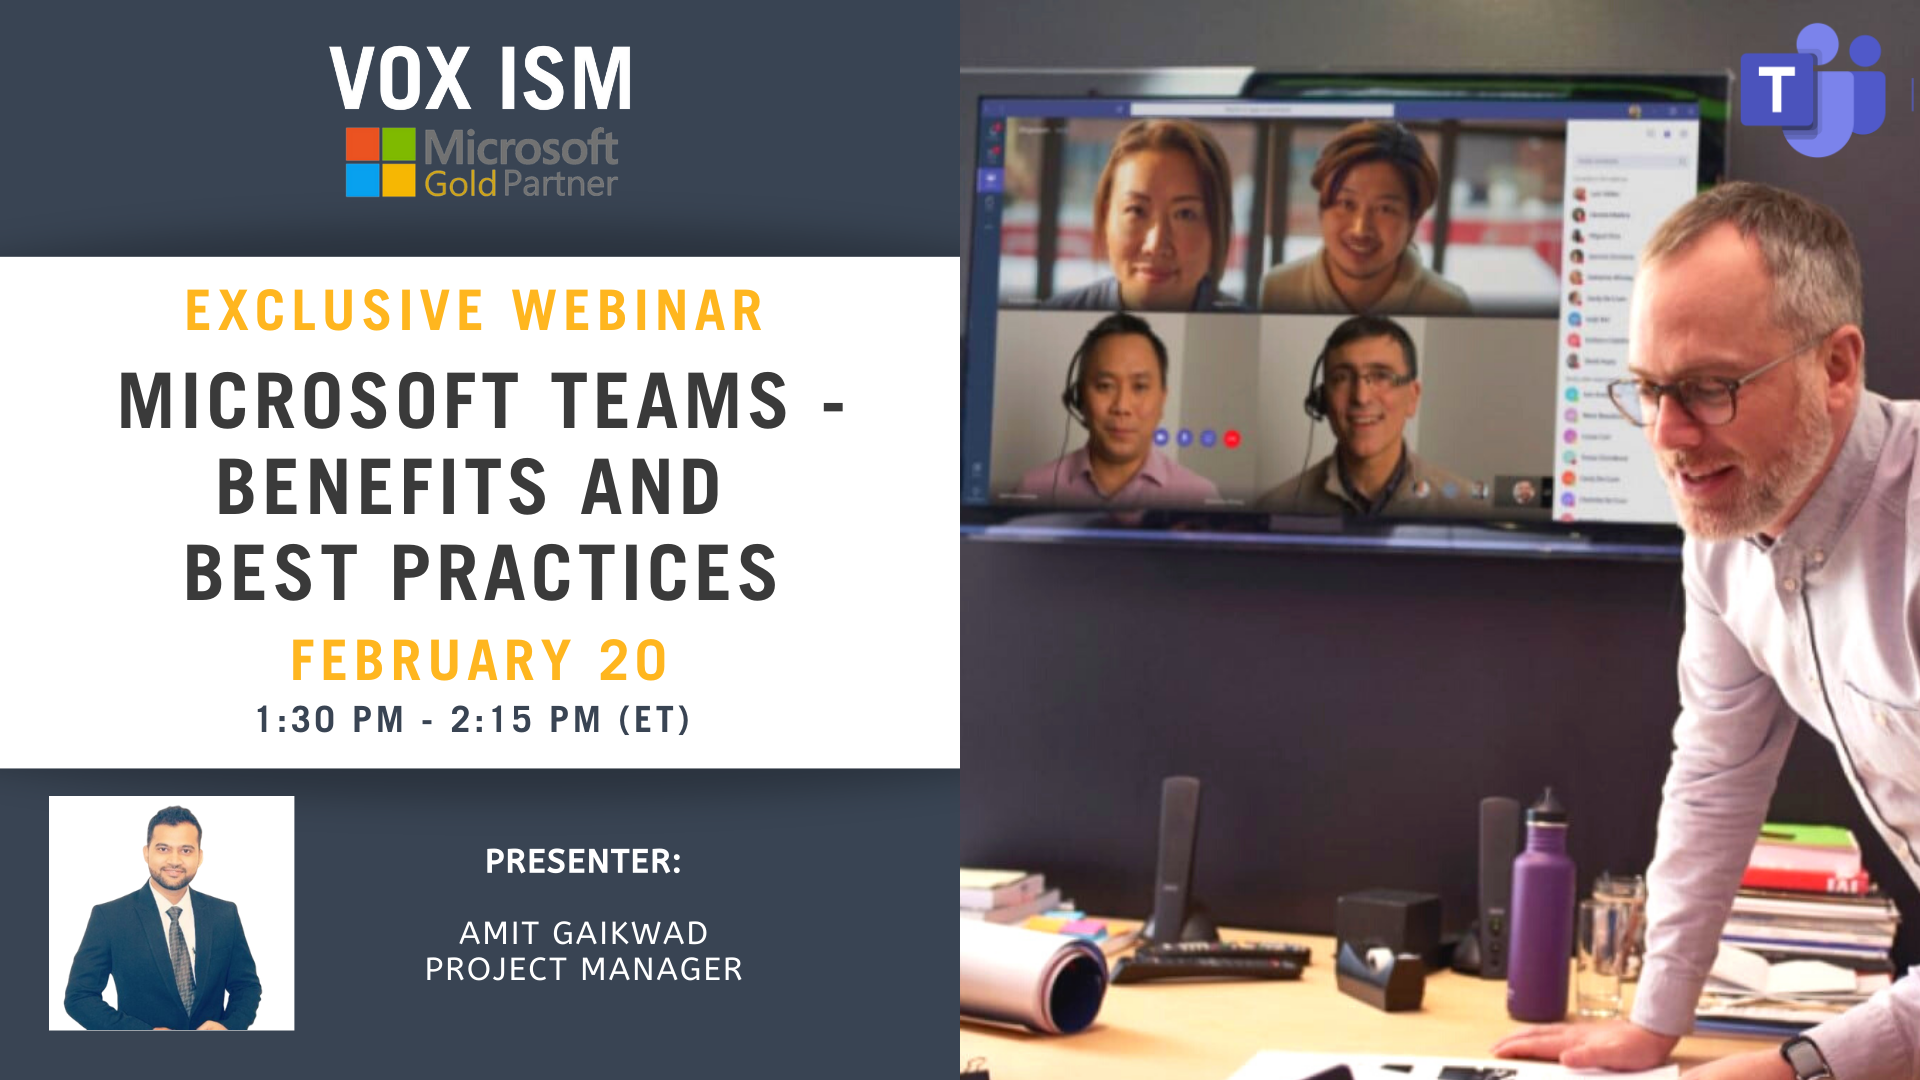 Microsoft Teams - Benefits and Best Practices - February 20 - Webinar